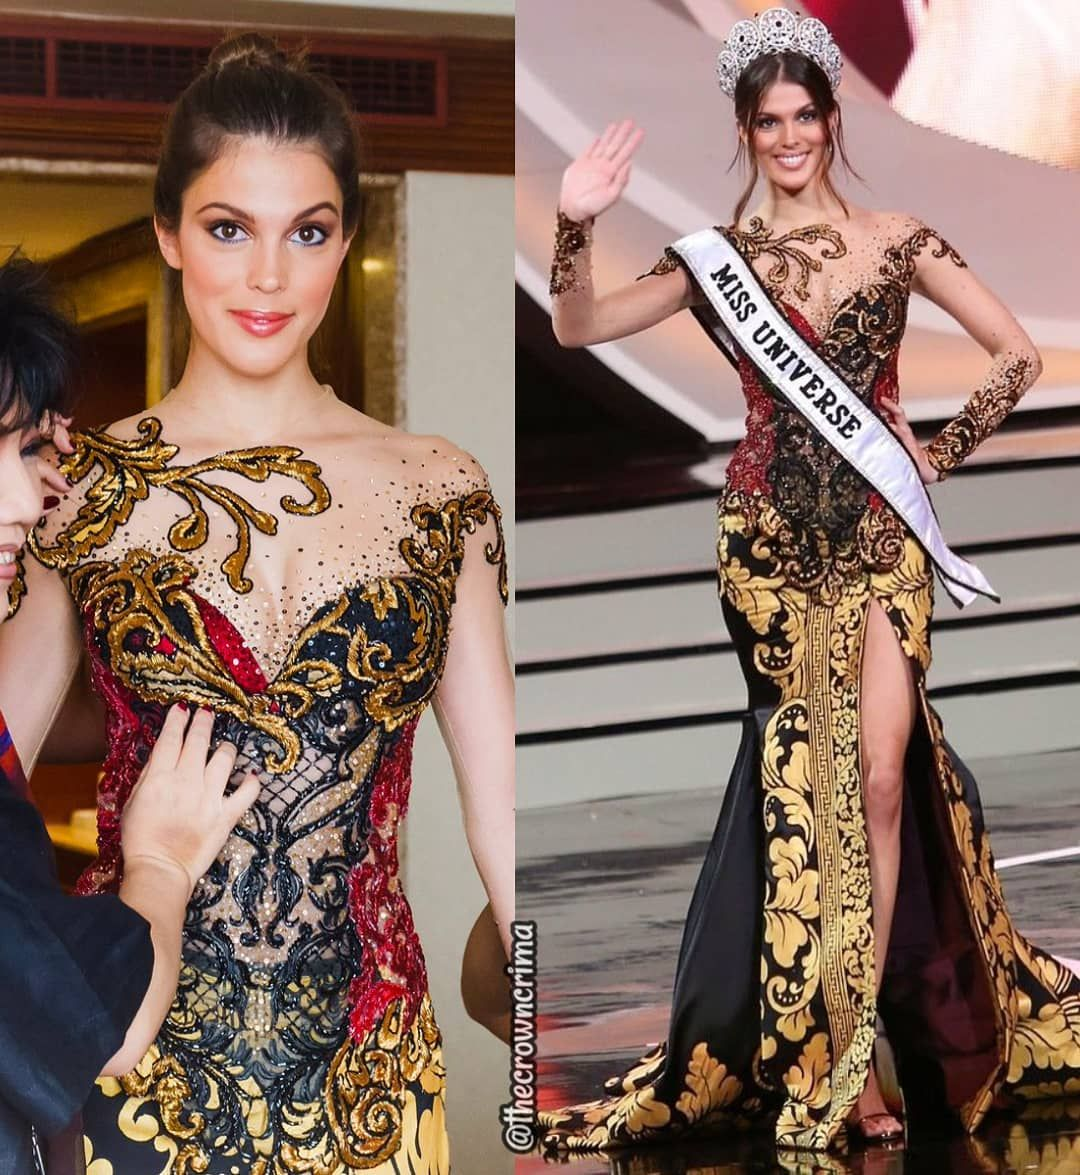 Crima On Instagram Iris Mittenaere Irismittenaeremf Miss Universe 2016 From France Wearing A Kebaya In The Final Of Puteri Indonesia 2017 She Loo Di 2020